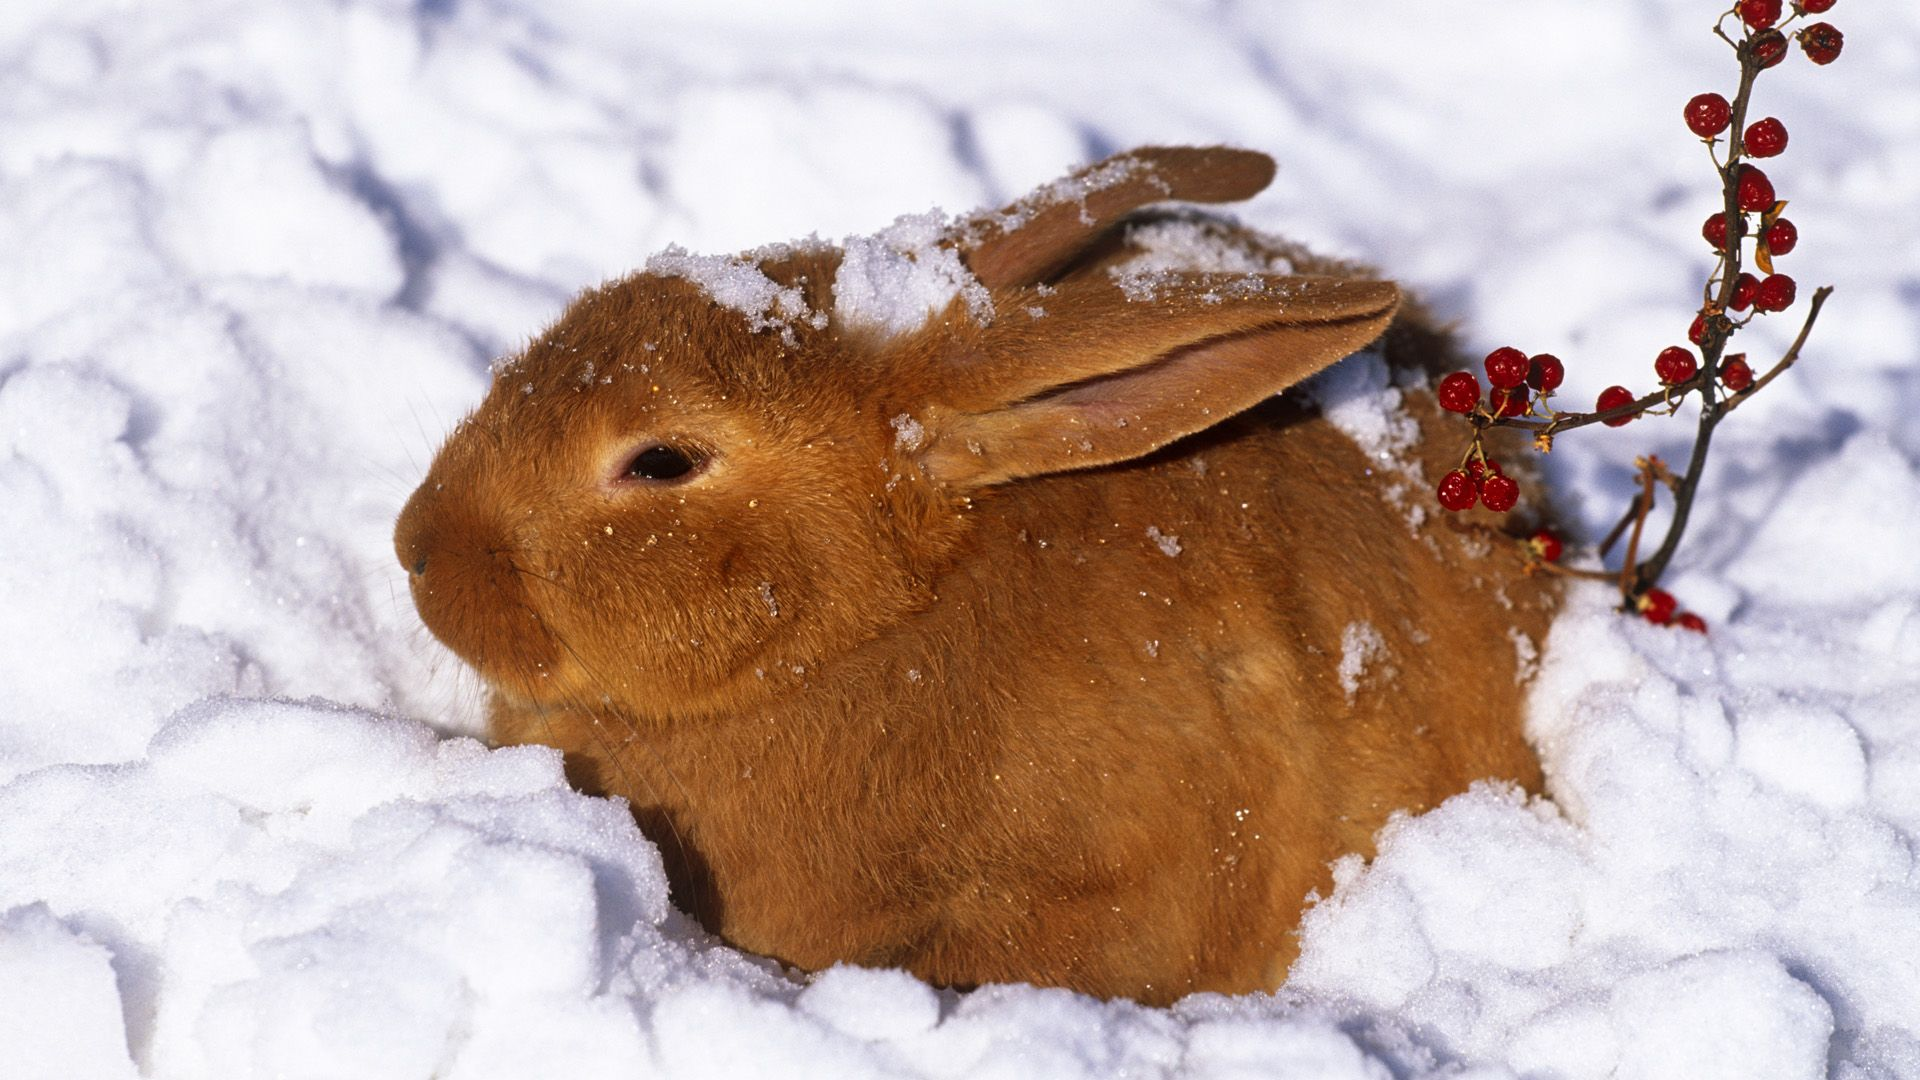 New Zealand rabbit (Oryctolagus) in snow with red berries